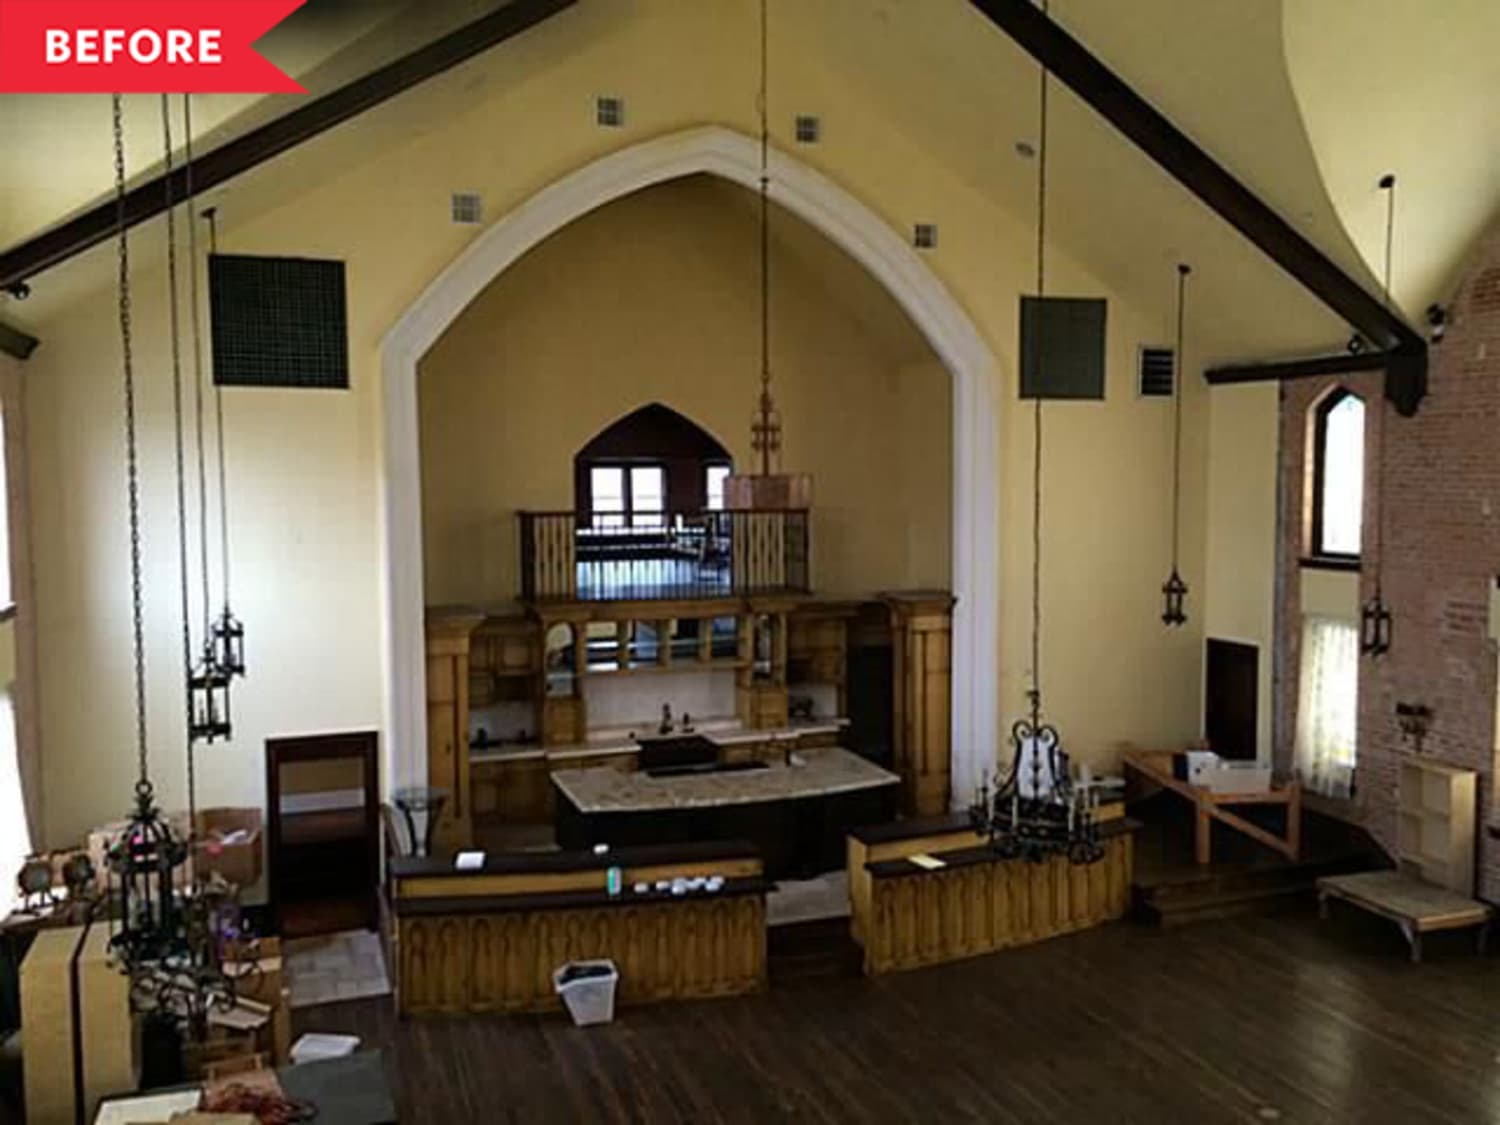 Before and After: This 100-Year-Old Converted Church's Kitchen Reno is a Stunner